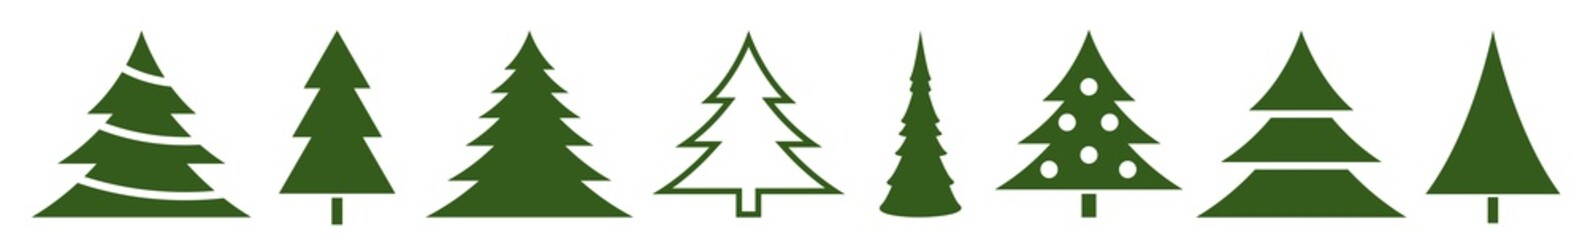 Christmas Tree Green Icon | Fir Tree Adornment Illustration | x-mas Symbol | Logo | Isolated Variations